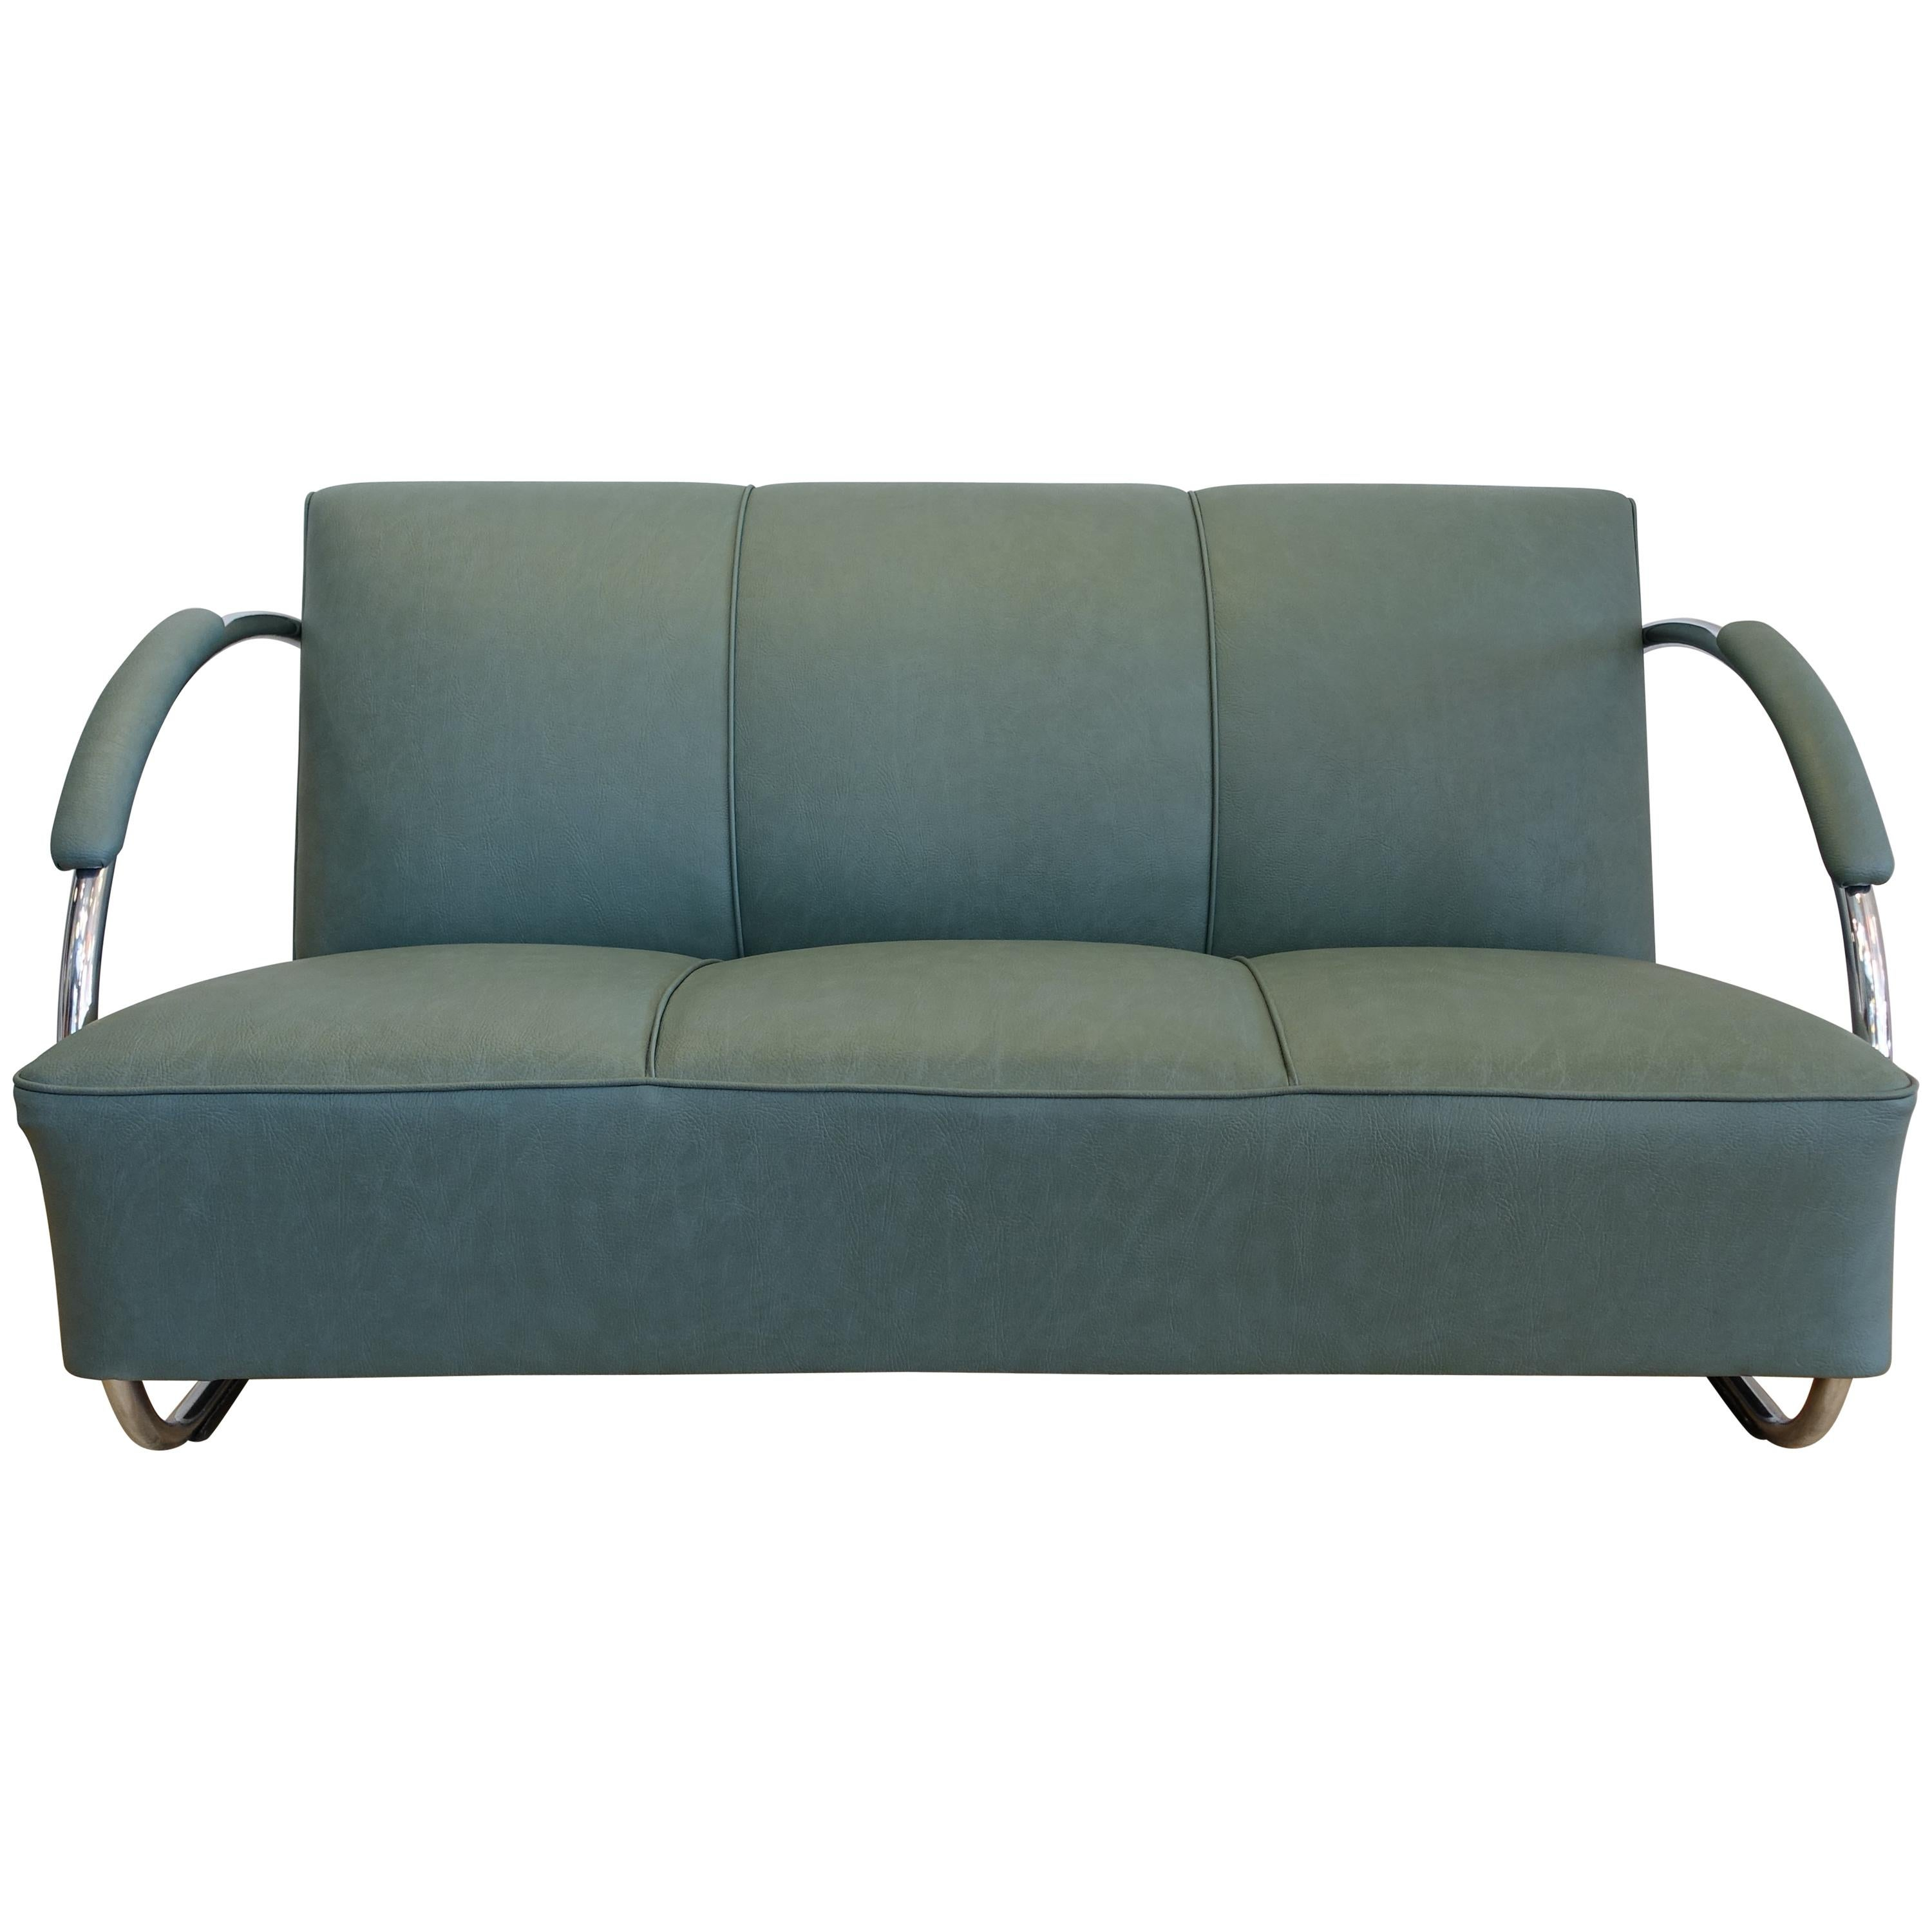 streamline chromed steel and green synthetic leather sofa 1930s for rh 1stdibs com synthetic leather softball glove synthetic leather sofa singapore